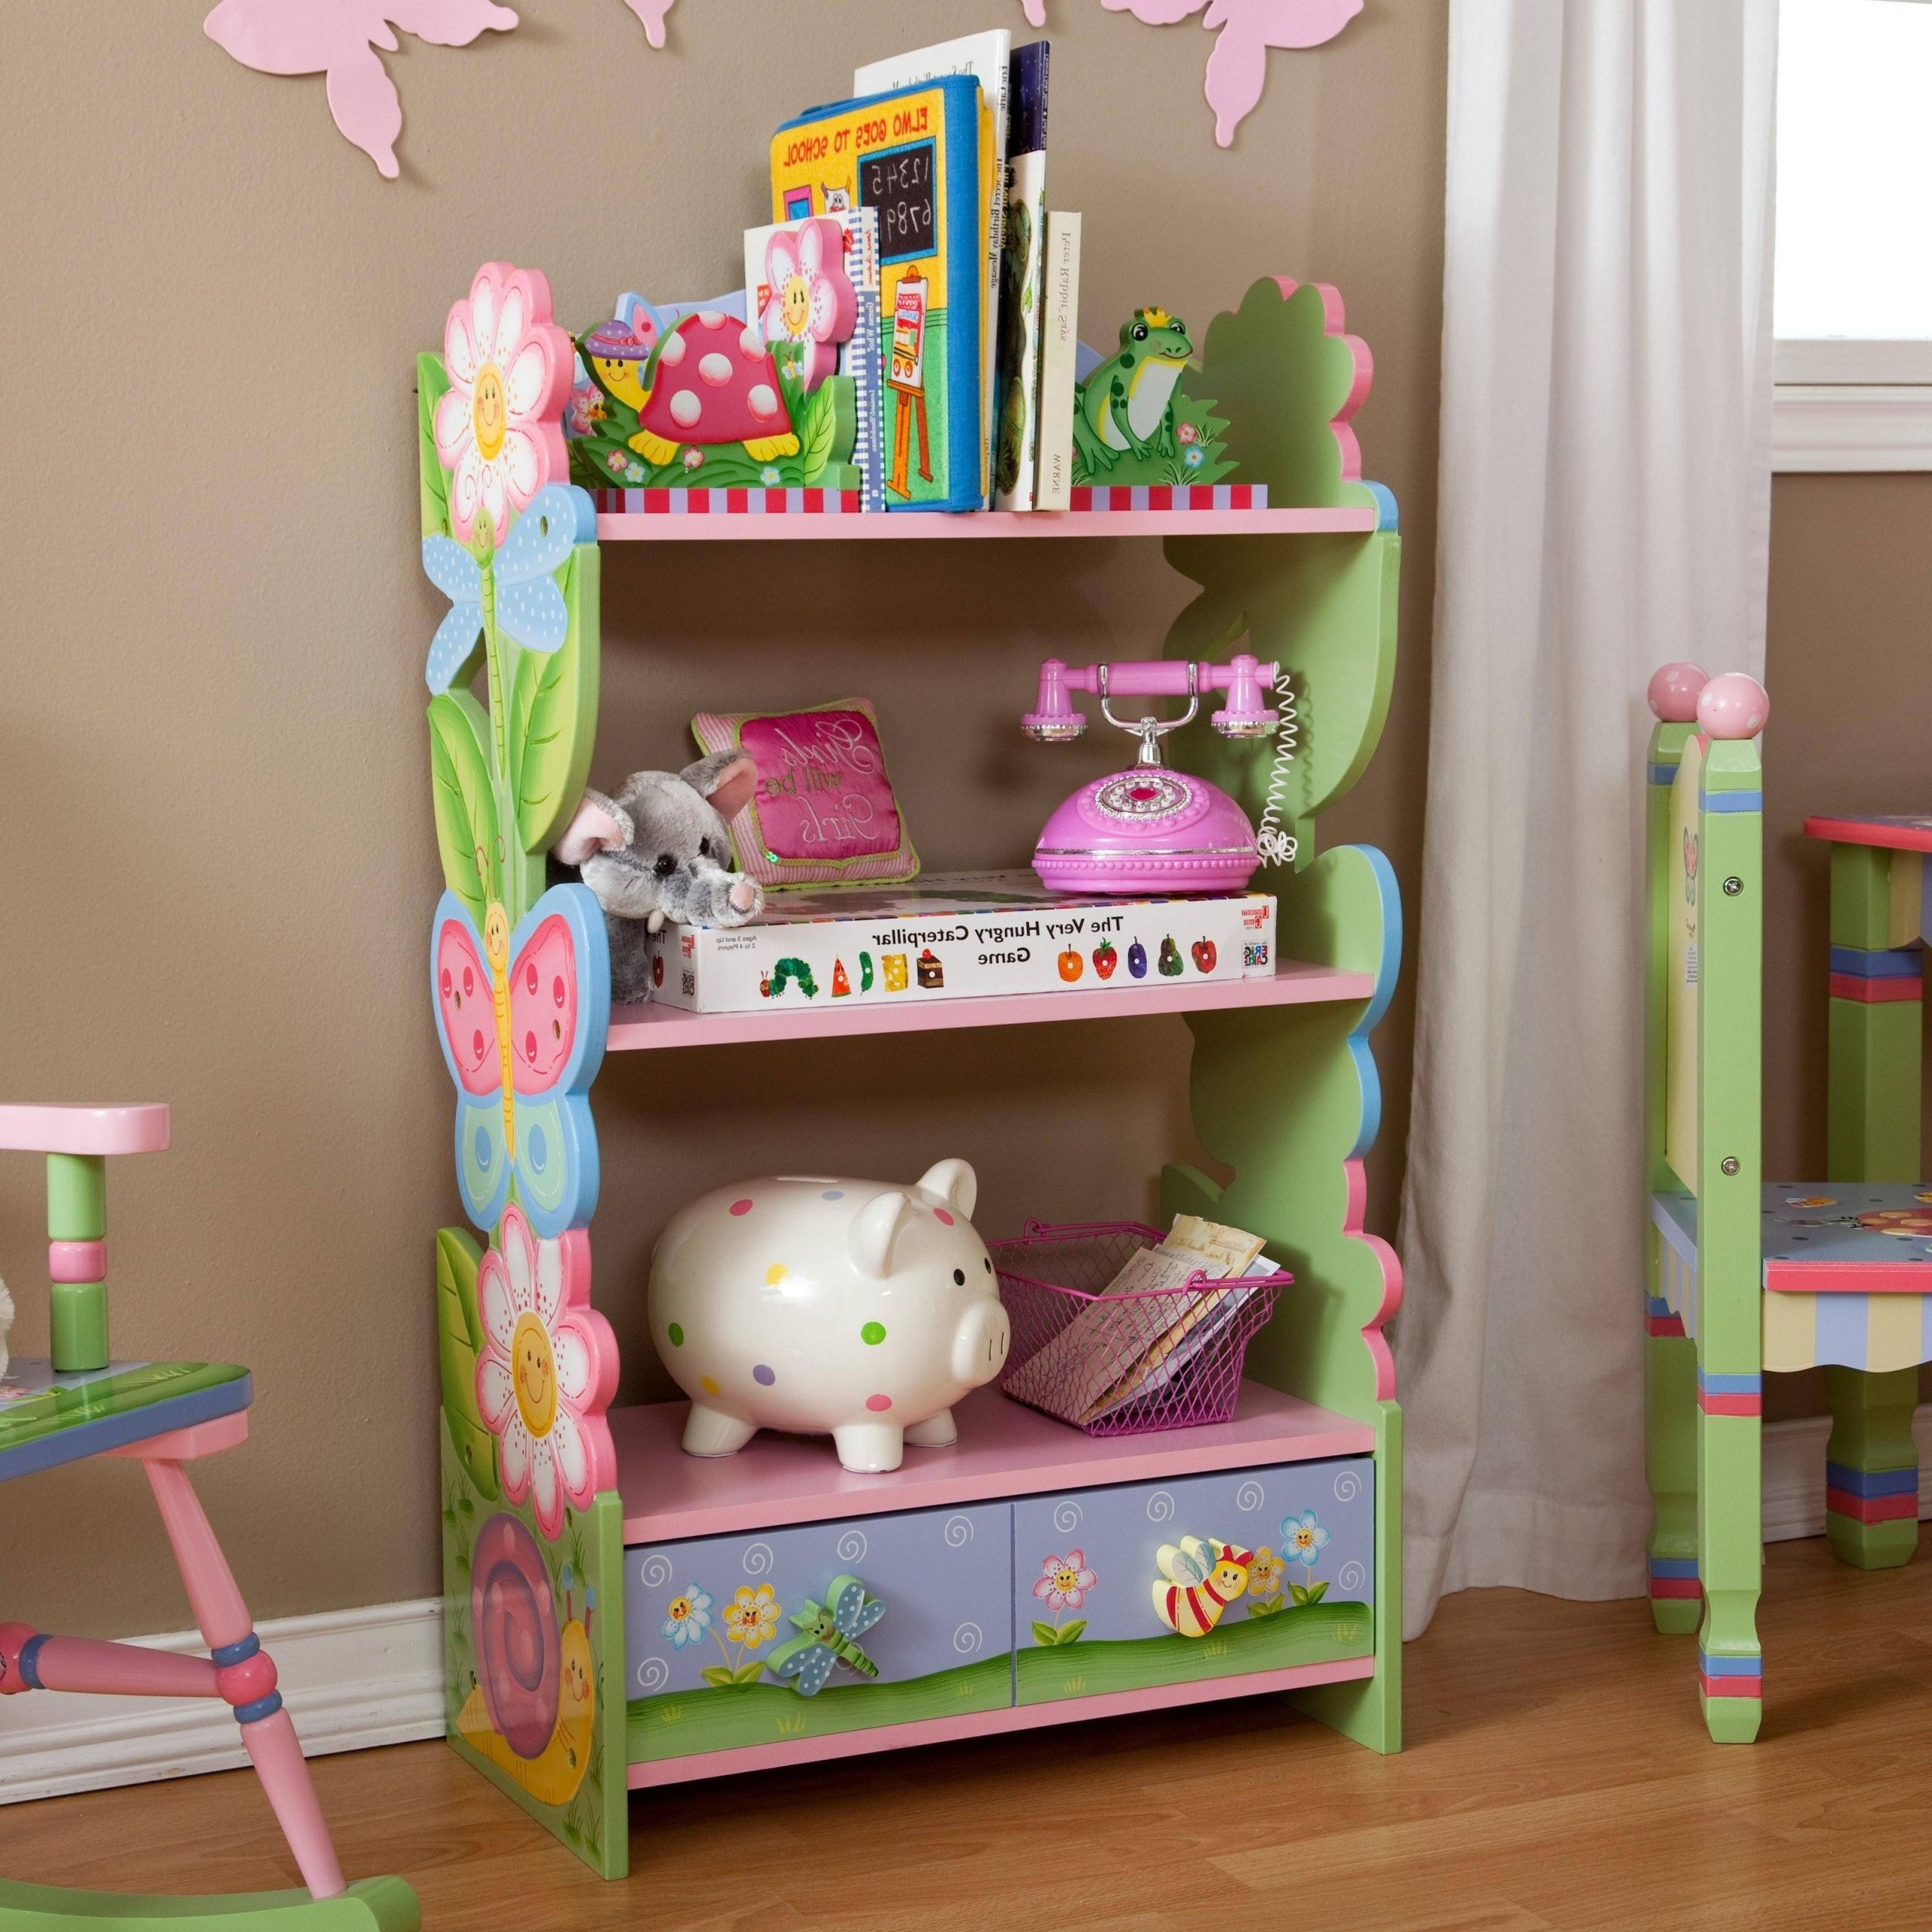 kids room bookshelves regarding property